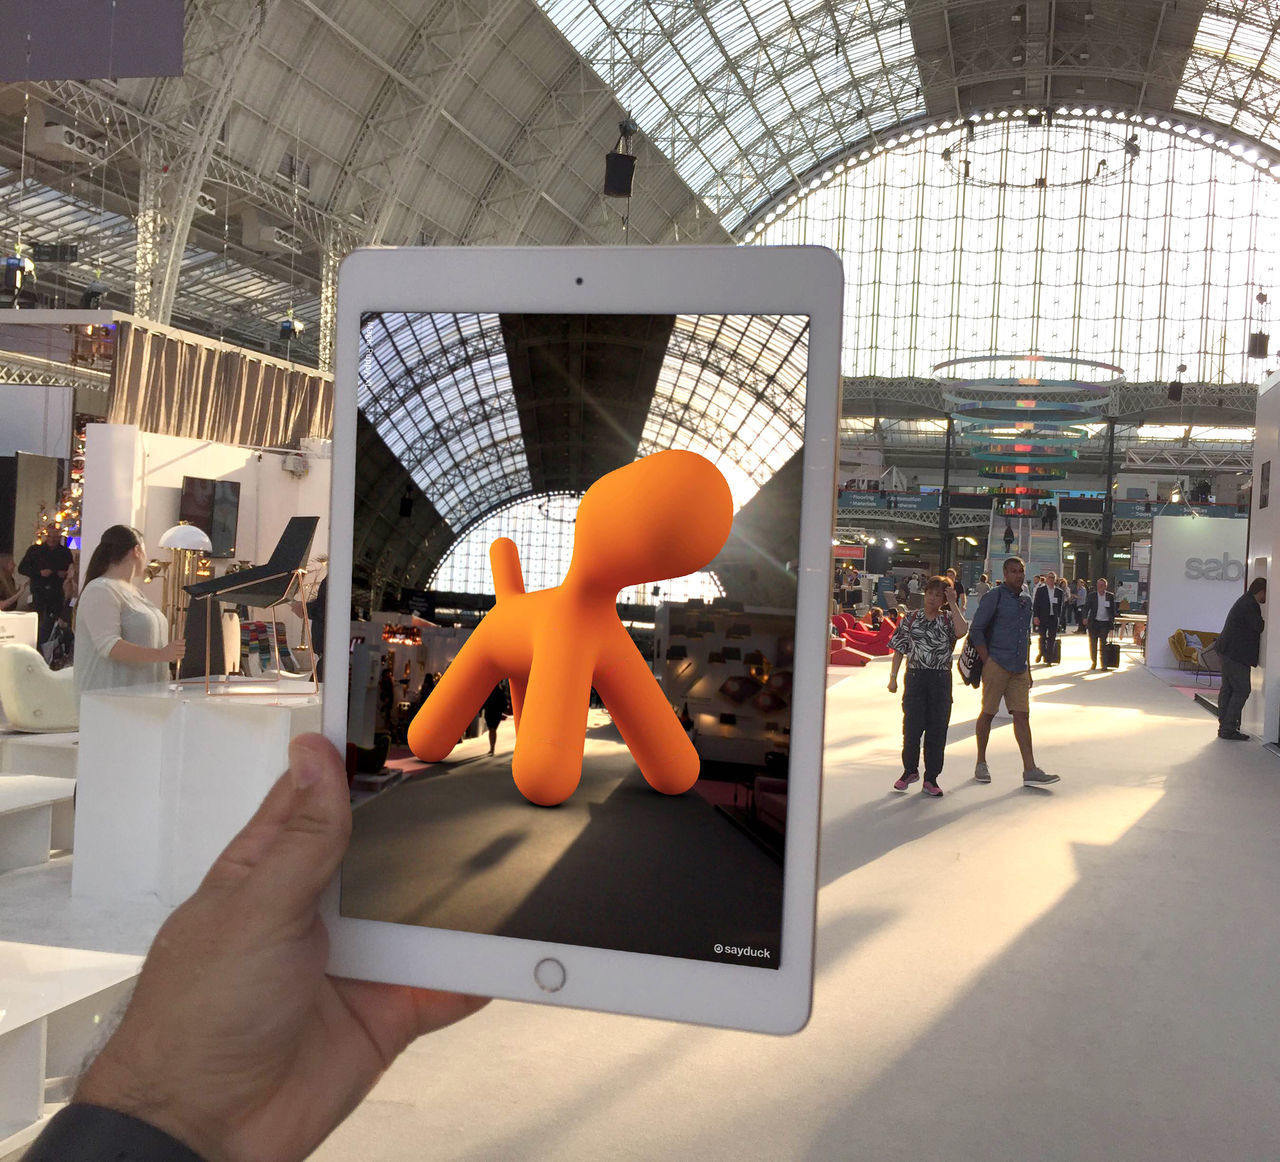 100% Design - Augmented Reality - Magis - Puppy Architecture Augmented Augmented Reality City Furniture Ipad IPad Air 2 Lifestyles London Magis Olympia Orange Color Puppy Reality First Eyeem Photo Apple